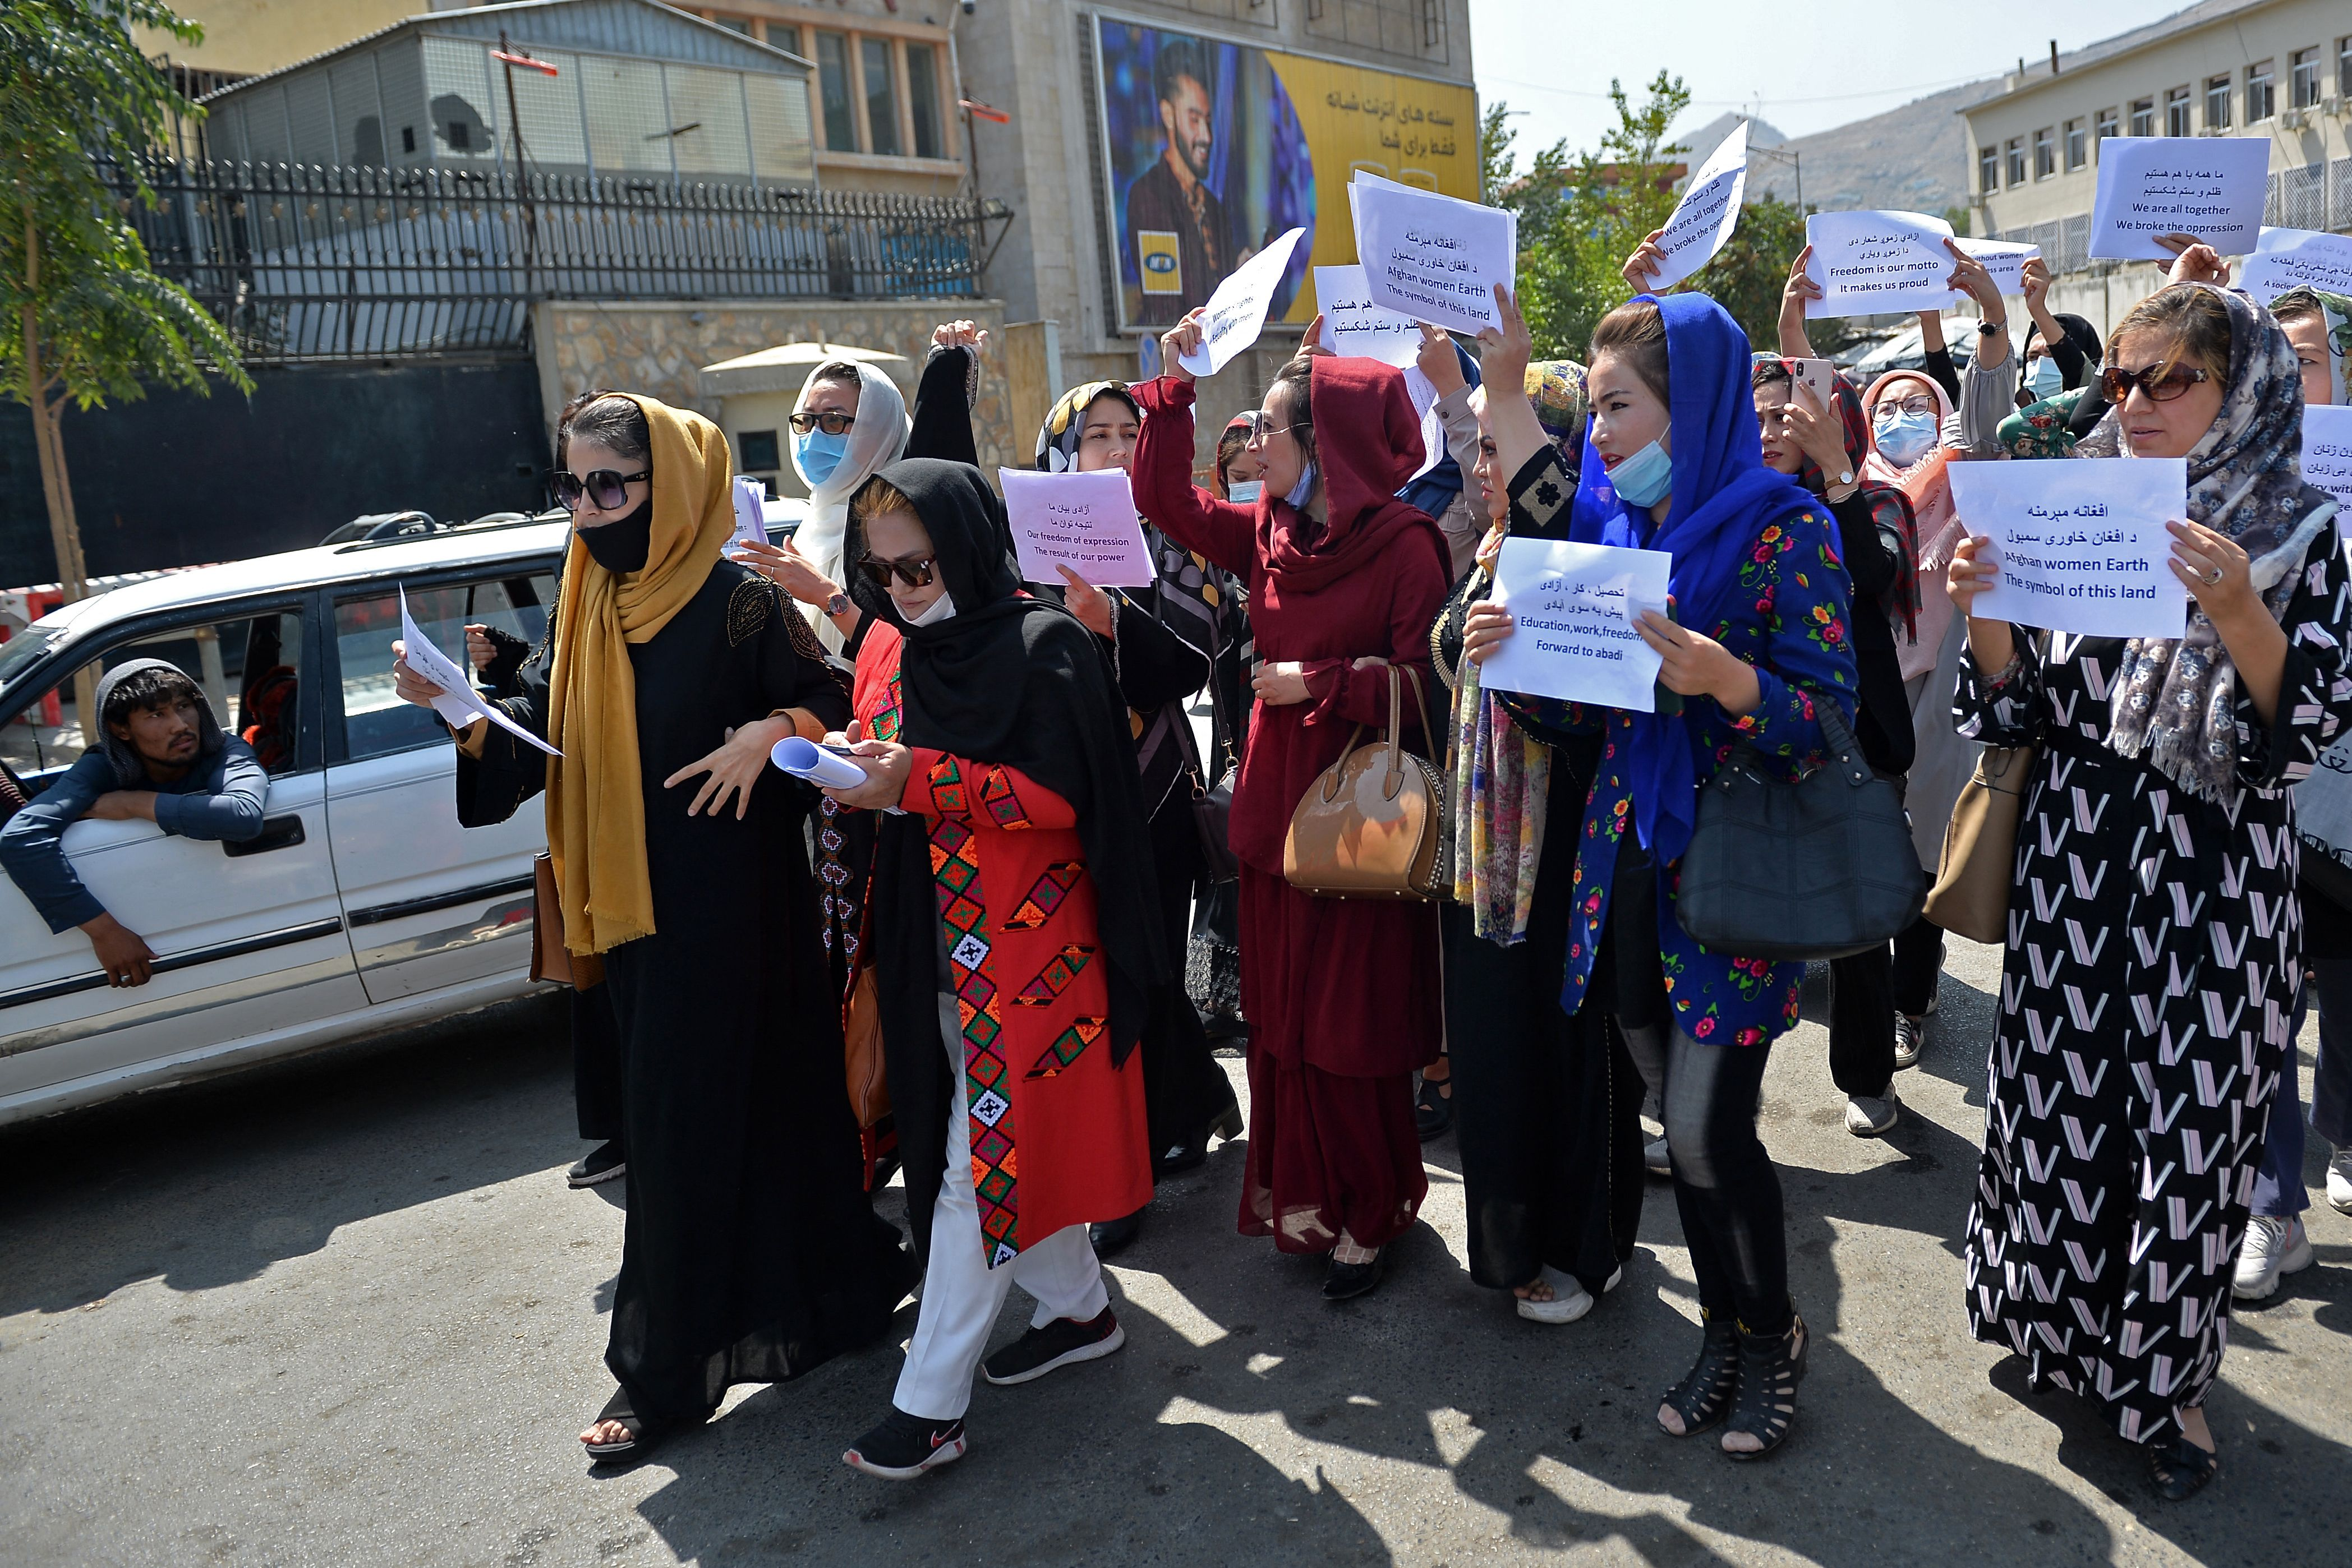 Afghan women take part in a protest march for their rights under the Taliban rule in the downtown area of Kabul. (Photo by HOSHANG HASHIMI/AFP via Getty Images)